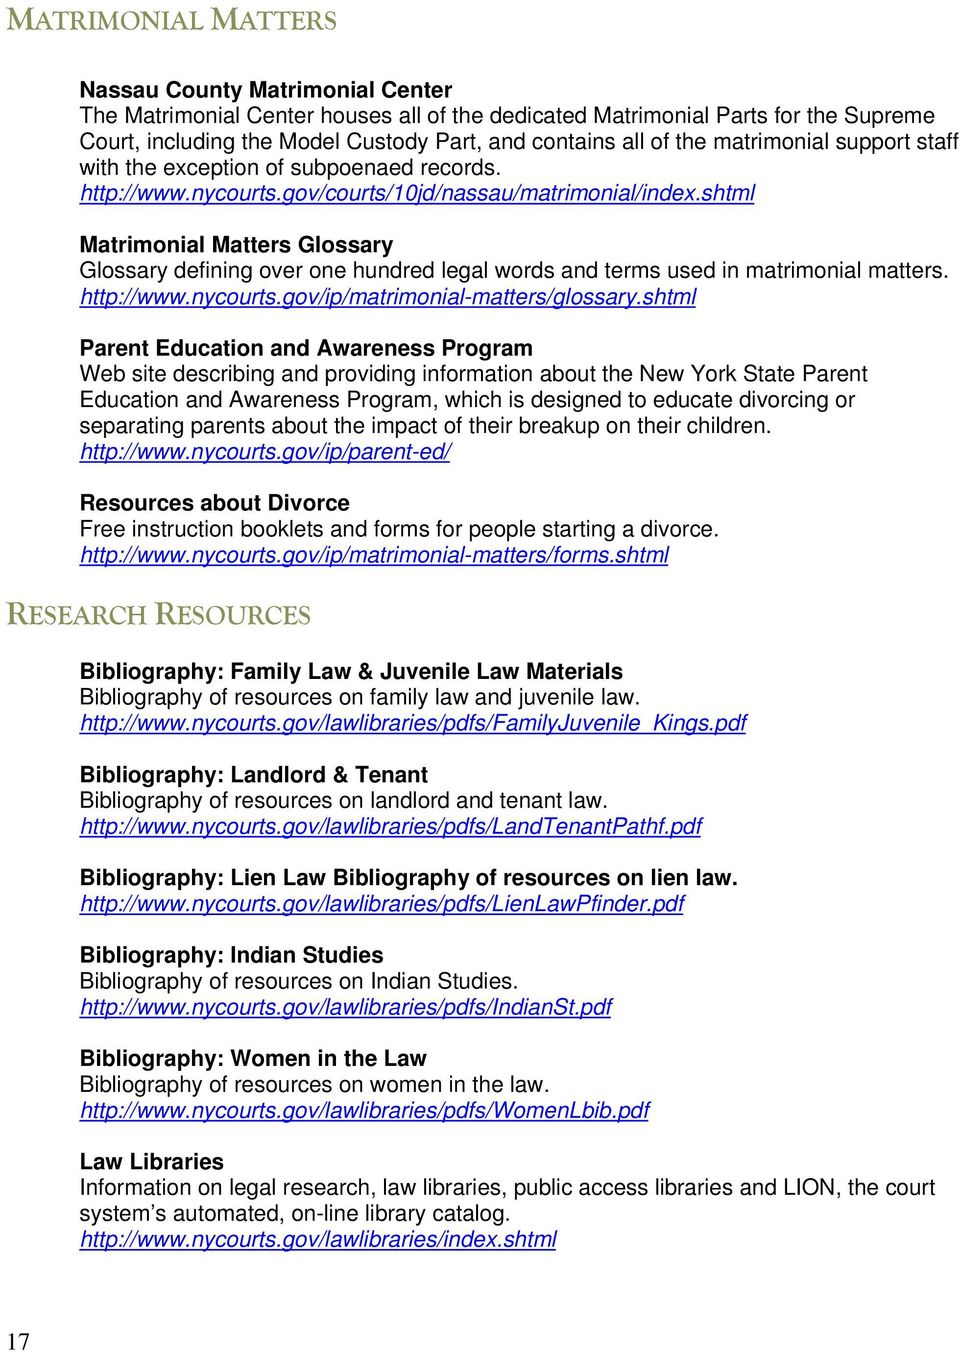 shtml Matrimonial Matters Glossary Glossary defining over one hundred legal words and terms used in matrimonial matters. http://www.nycourts.gov/ip/matrimonial-matters/glossary.